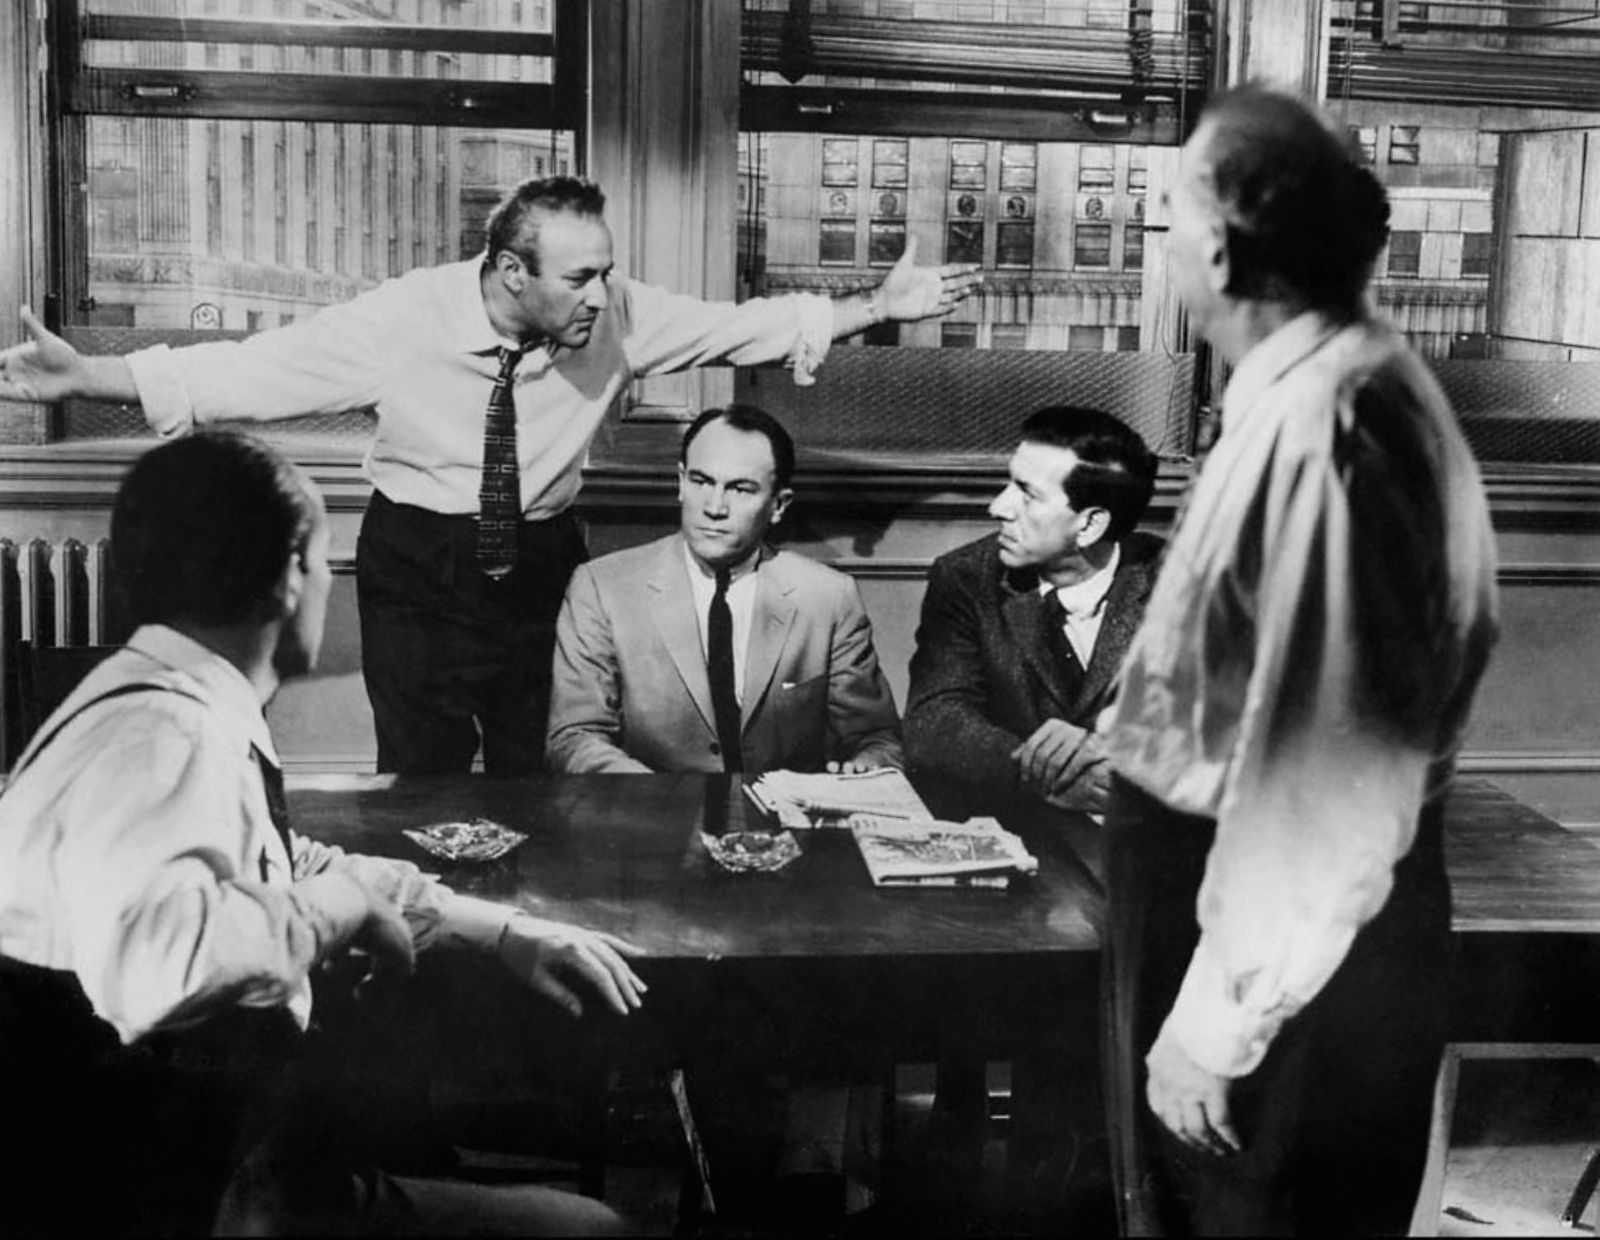 the different aspects of communication in twelve angry men a movie by sidney lumet Making movies by sidney lumet the veteran director of twelve angry men, the and post-production phases in the movie's life lumet gives many.